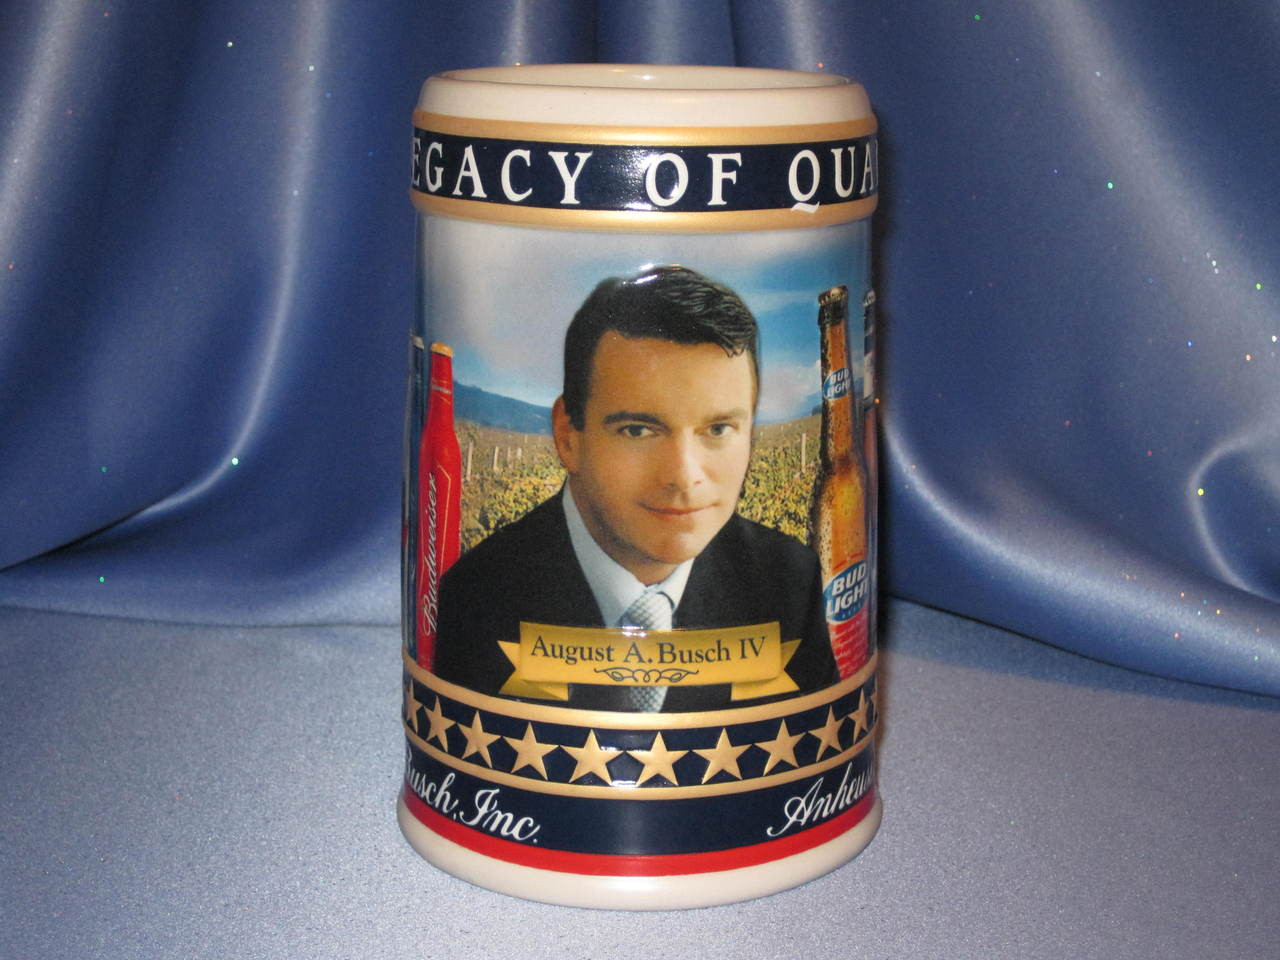 August A. Busch IV - 2007 State Convention Stein/Mug Fa